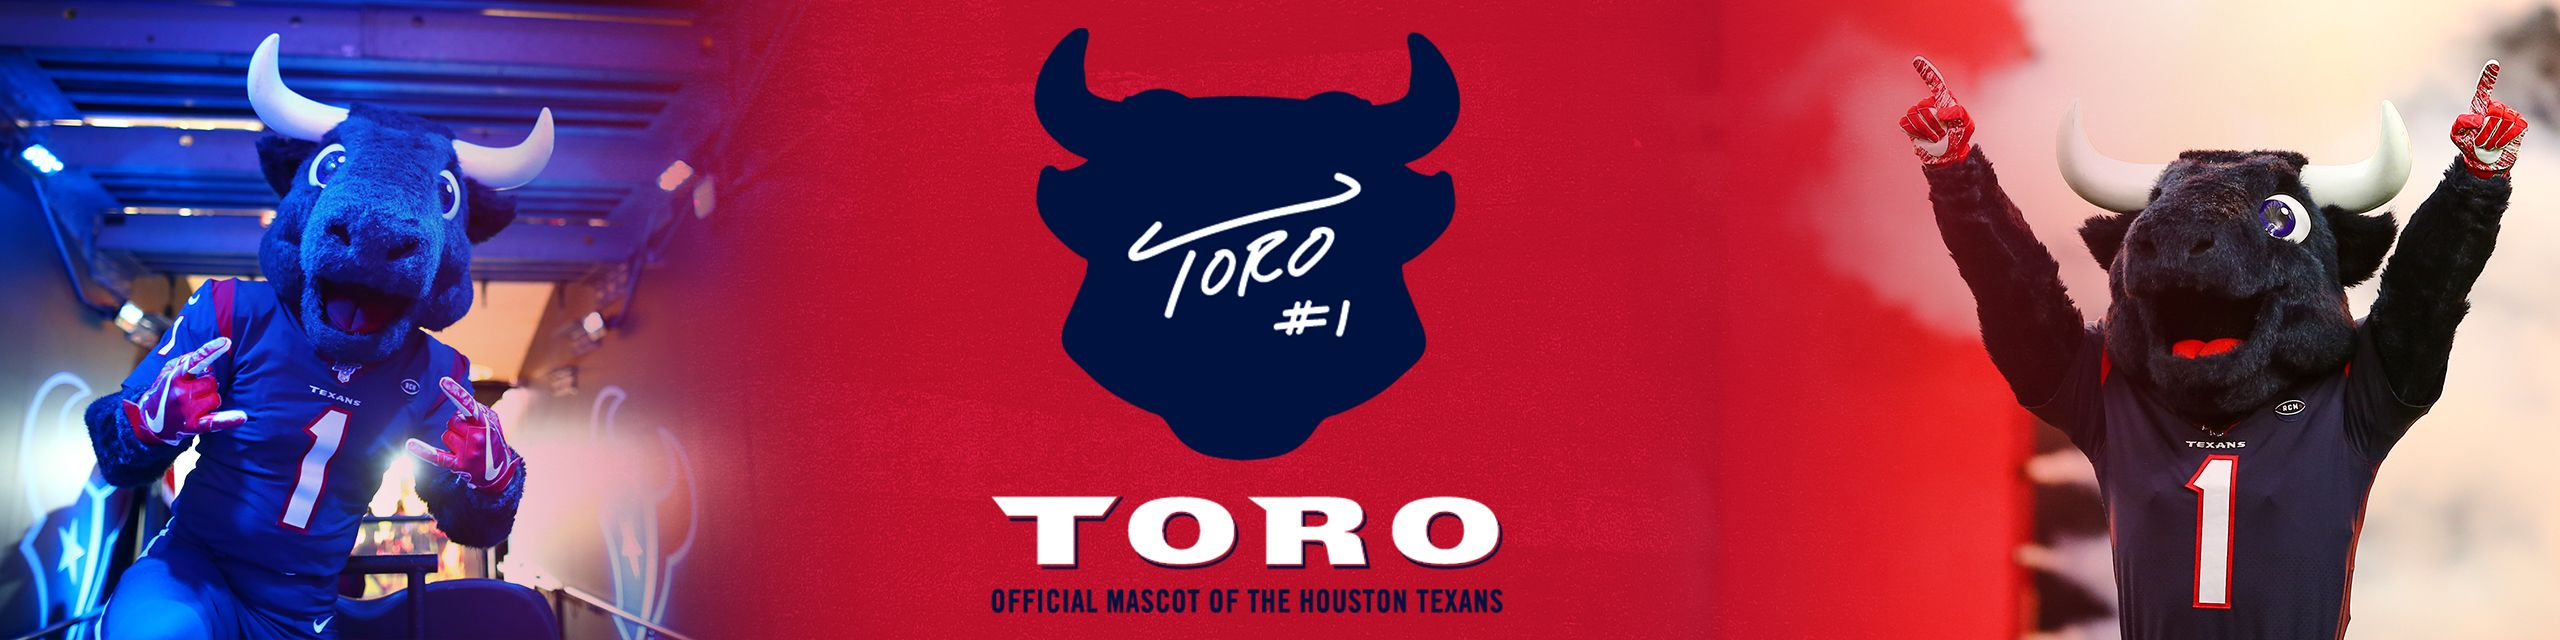 TORO, the official mascot of the Houston Texans